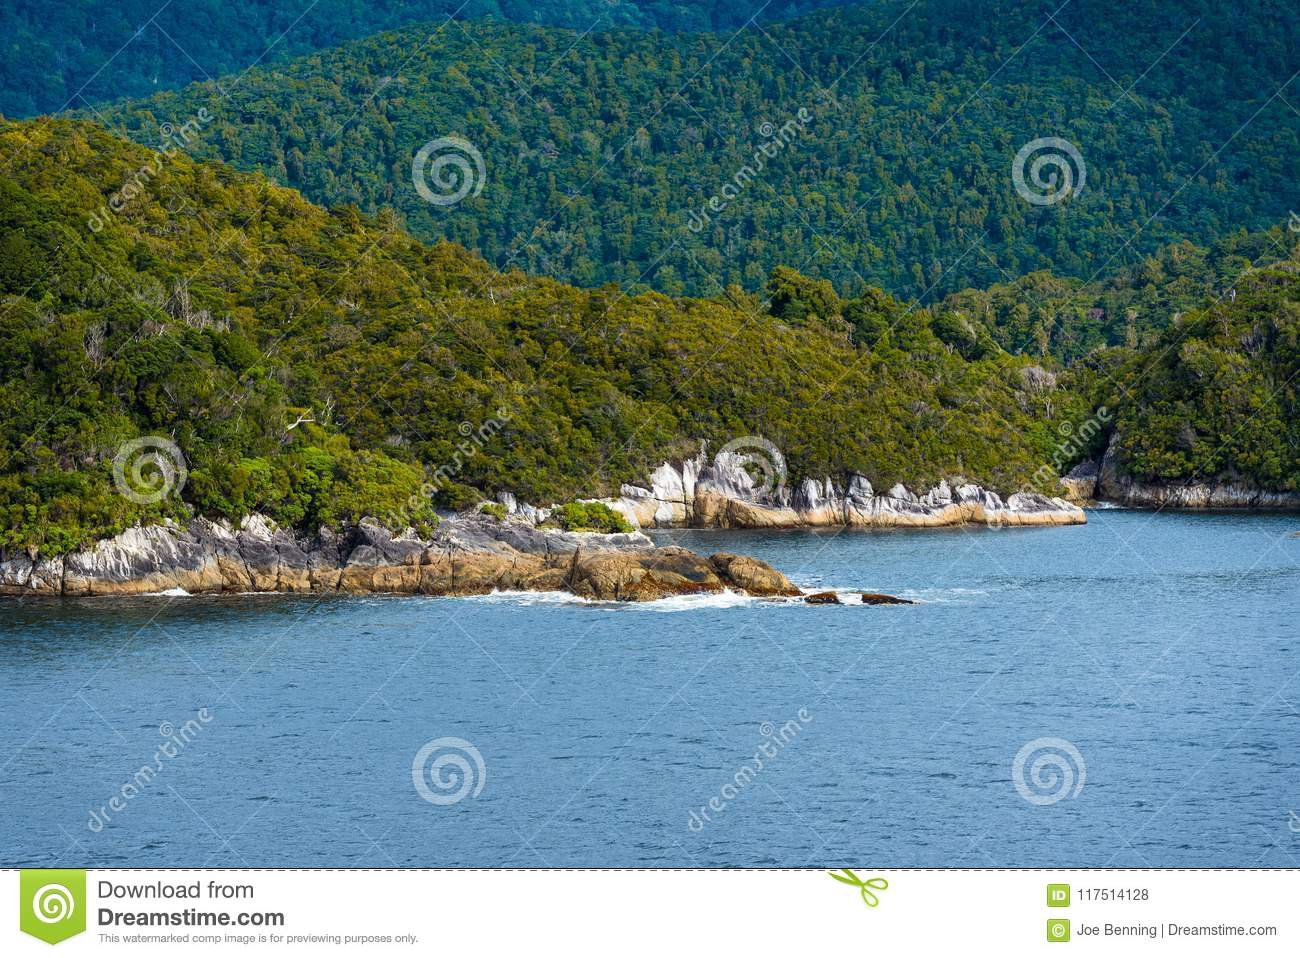 The Waters of Dusky Sound